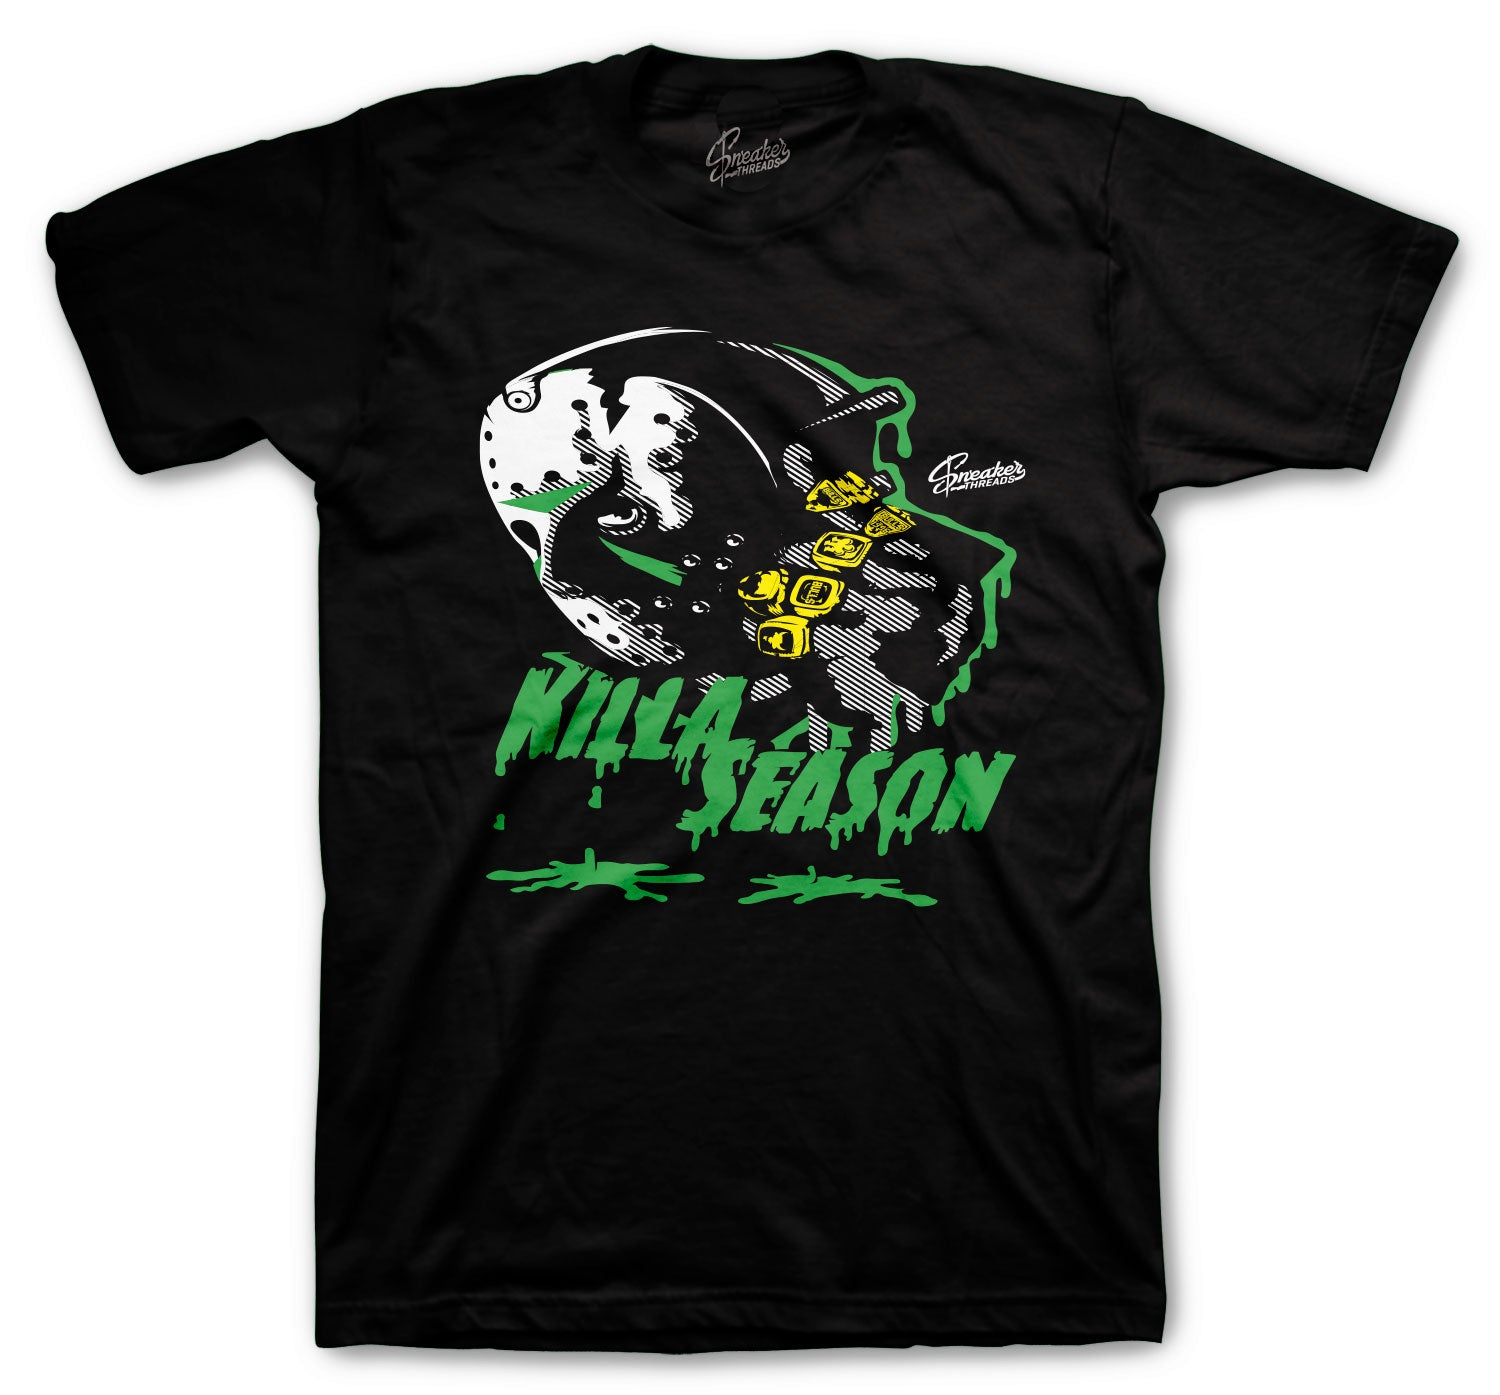 Jordan 13 Lucky Green Shirt - Killa Season - Black